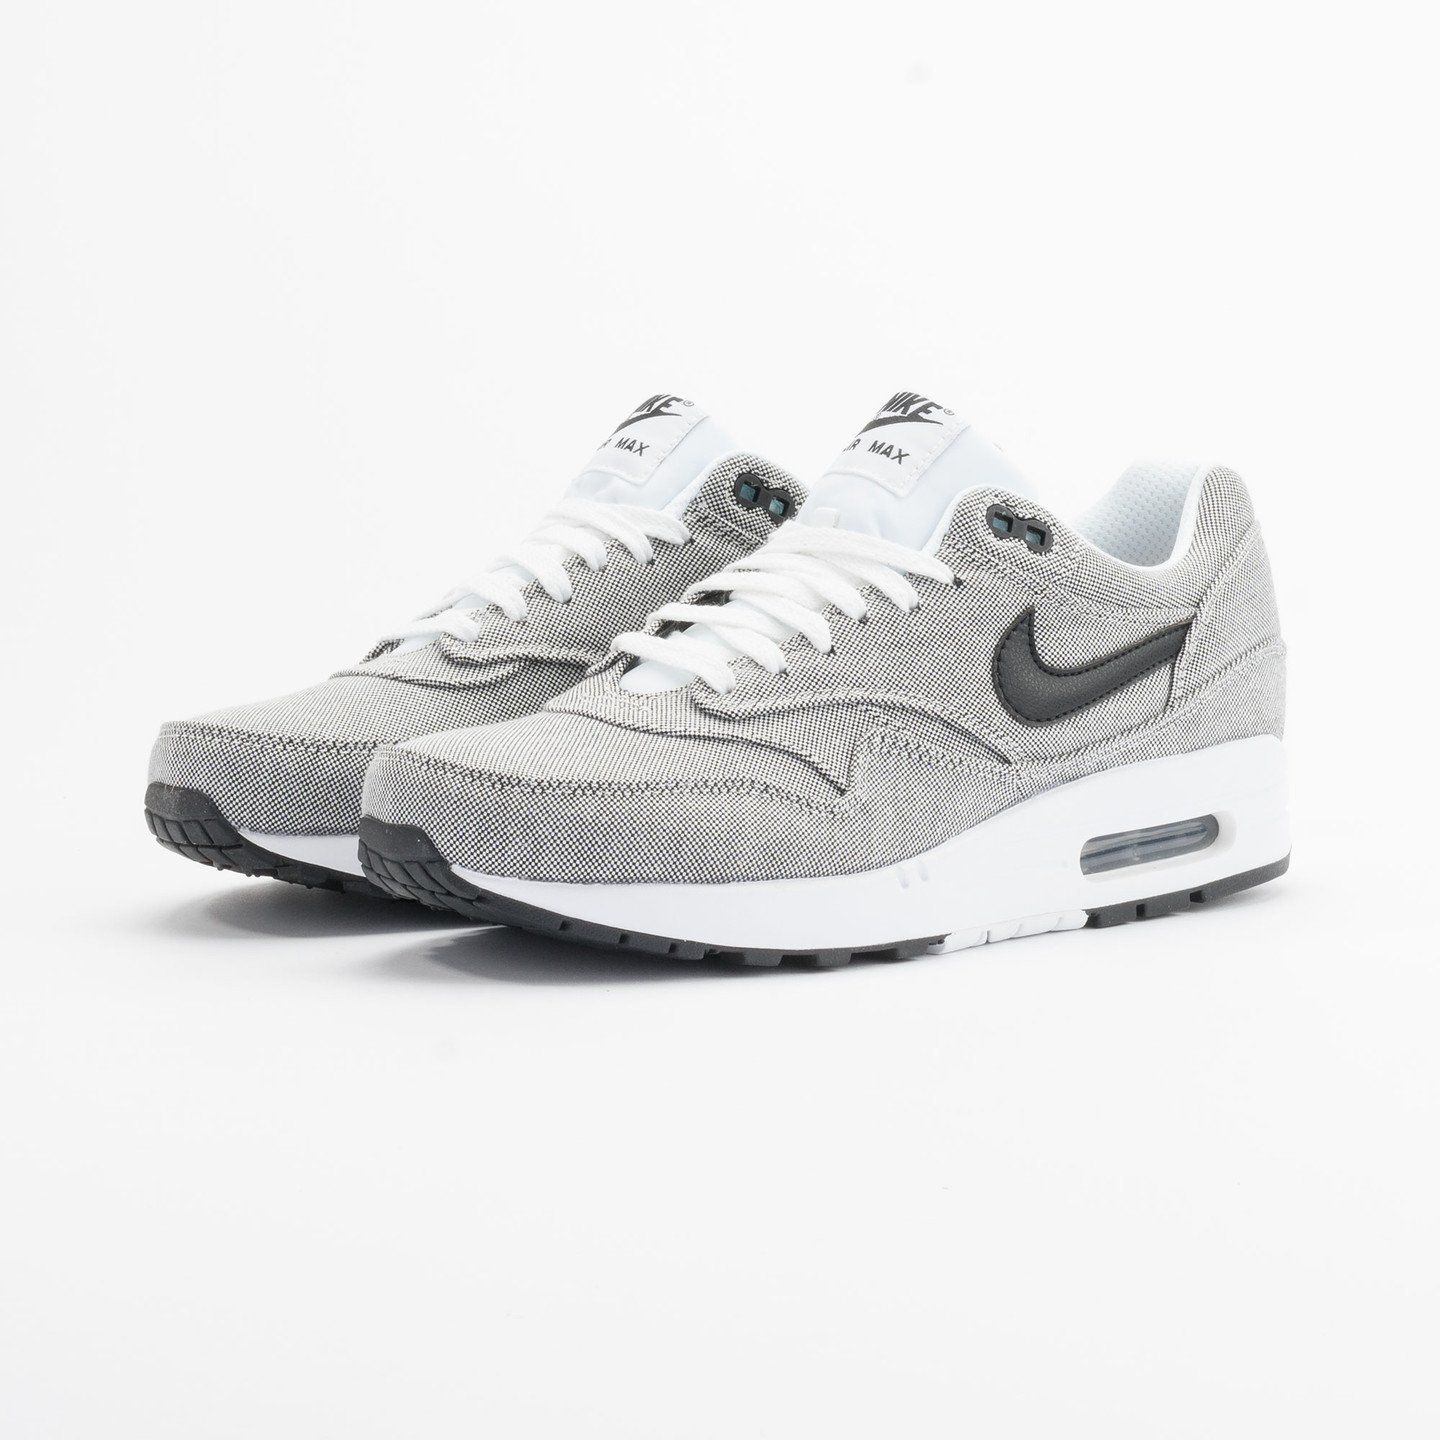 Nike Air Max 1 Prm Picknick Pack Black/White 512033-103-42.5